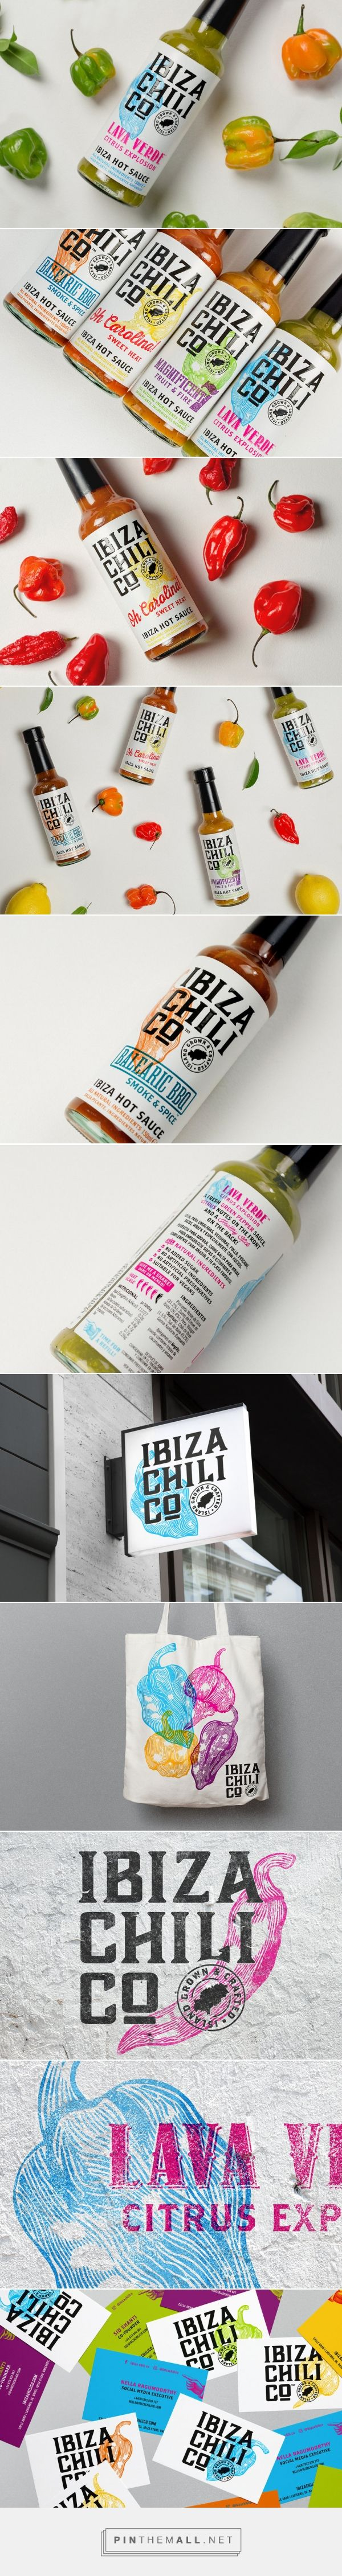 Ibiza Chili Co /  Ibiza Hot Sauces by Studio Parr